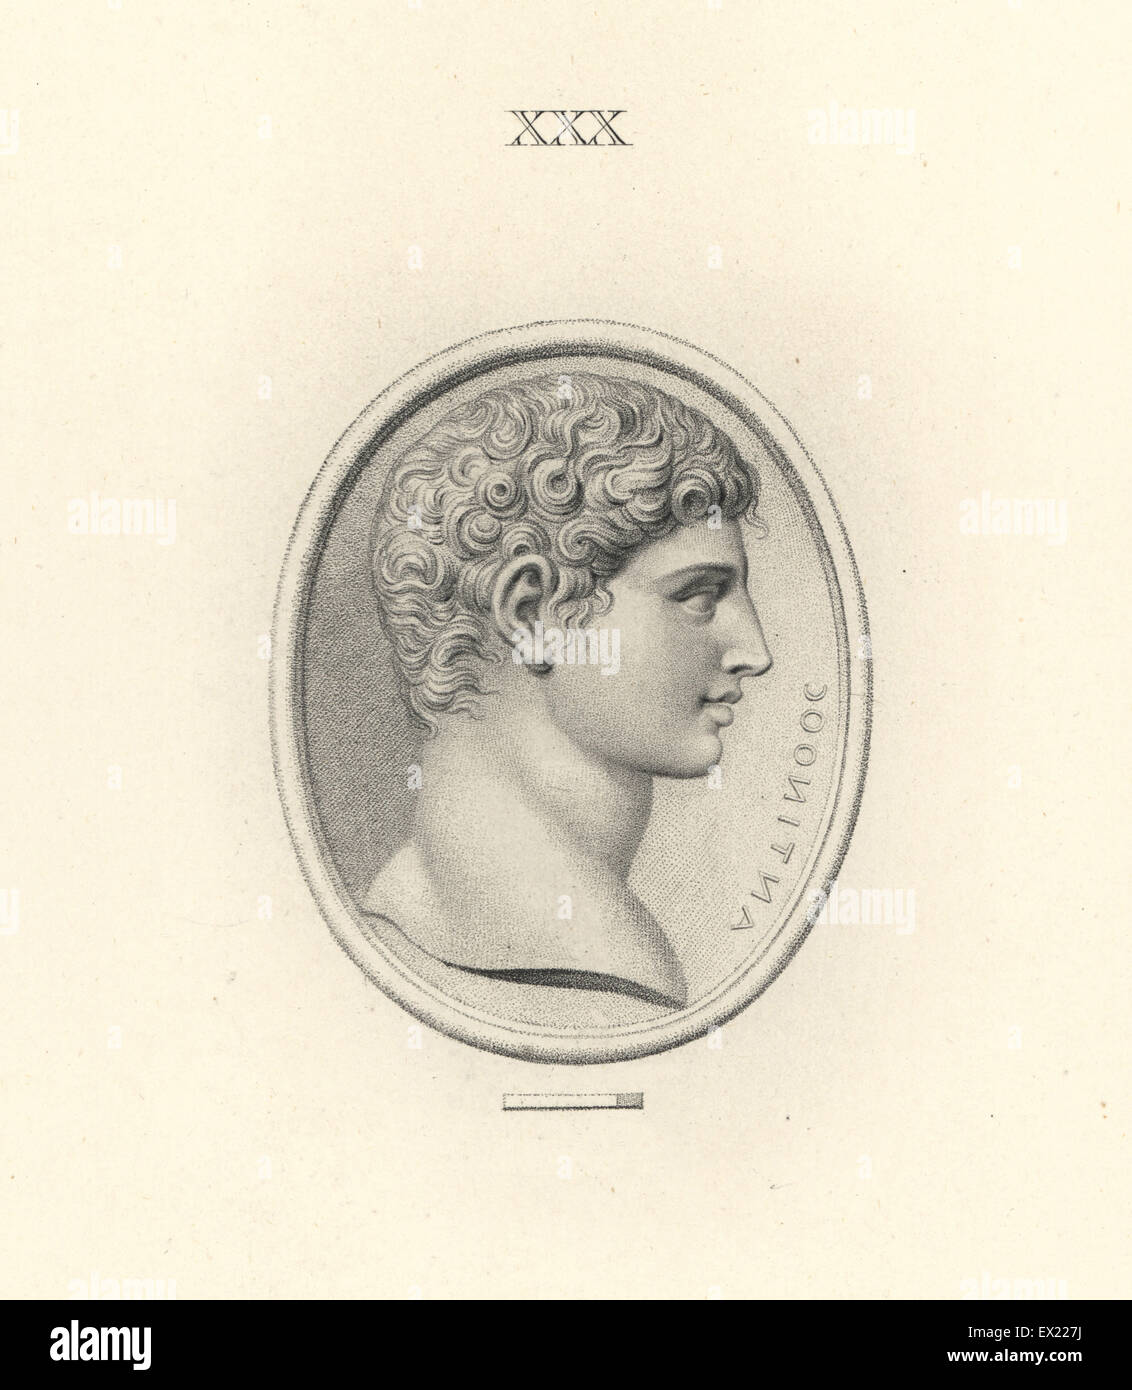 Antinous, Bithynian Greek lover of the Roman emperor Hadrian. Copperplate engraving by Francesco Bartolozzi from - Stock Image